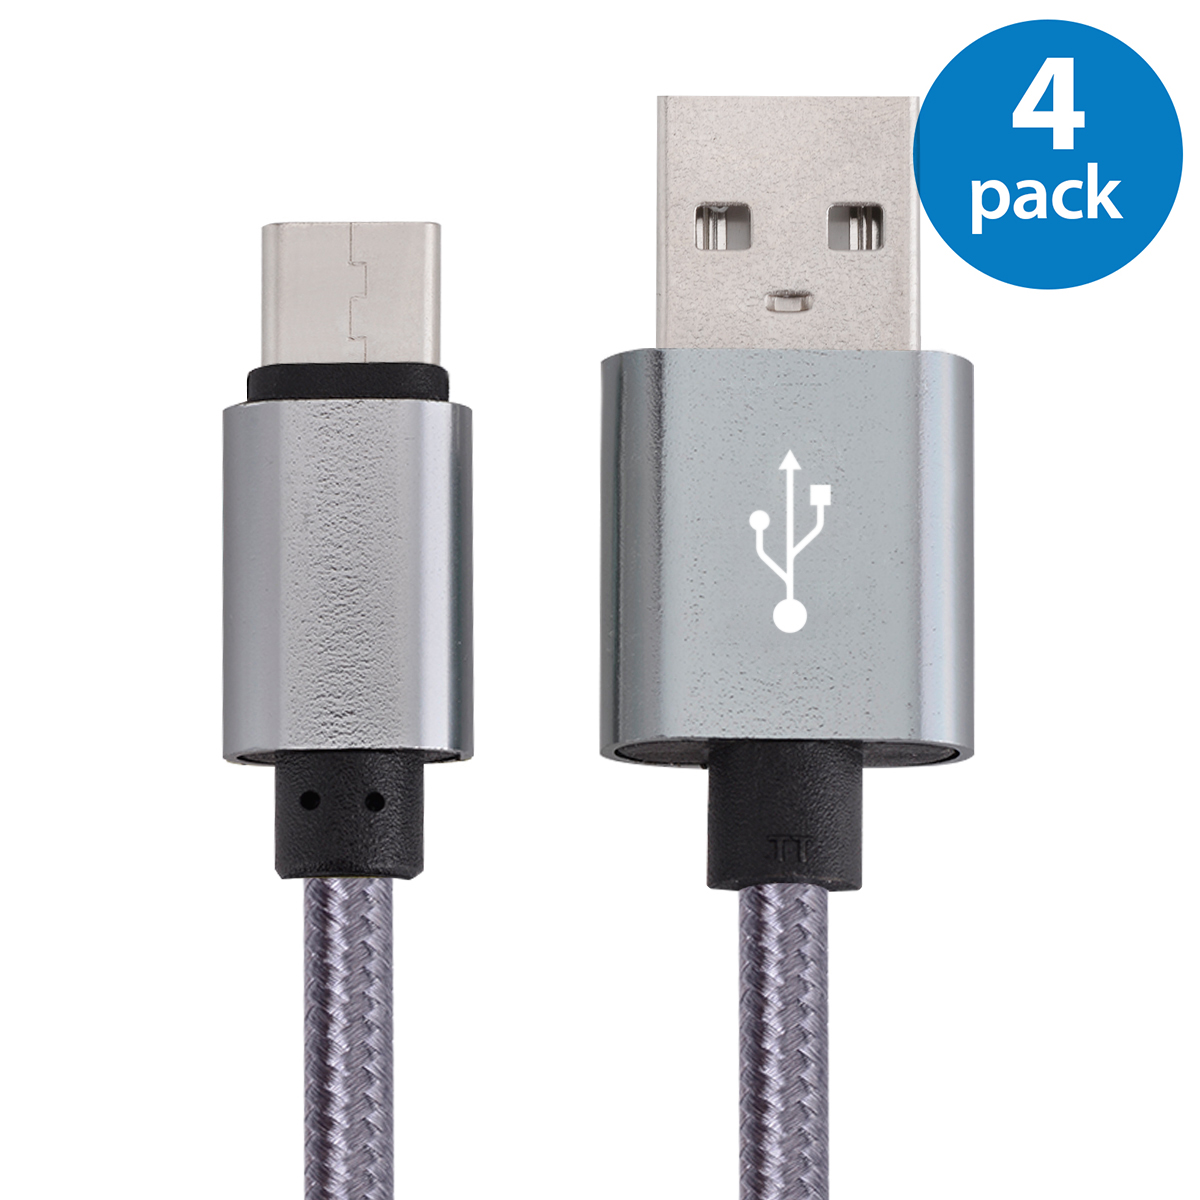 4x USB Type C Cable Fast Charging Cable 10FT USB-C Type-C 3.1 Nylon Braided Data Sync Charger Cord For Samsung Galaxy S8 + Note 8 Nexus 5X 6P LG G5 G6 V20 HTC 10 Google Pixel XL OnePlus 3 5 Space Gray